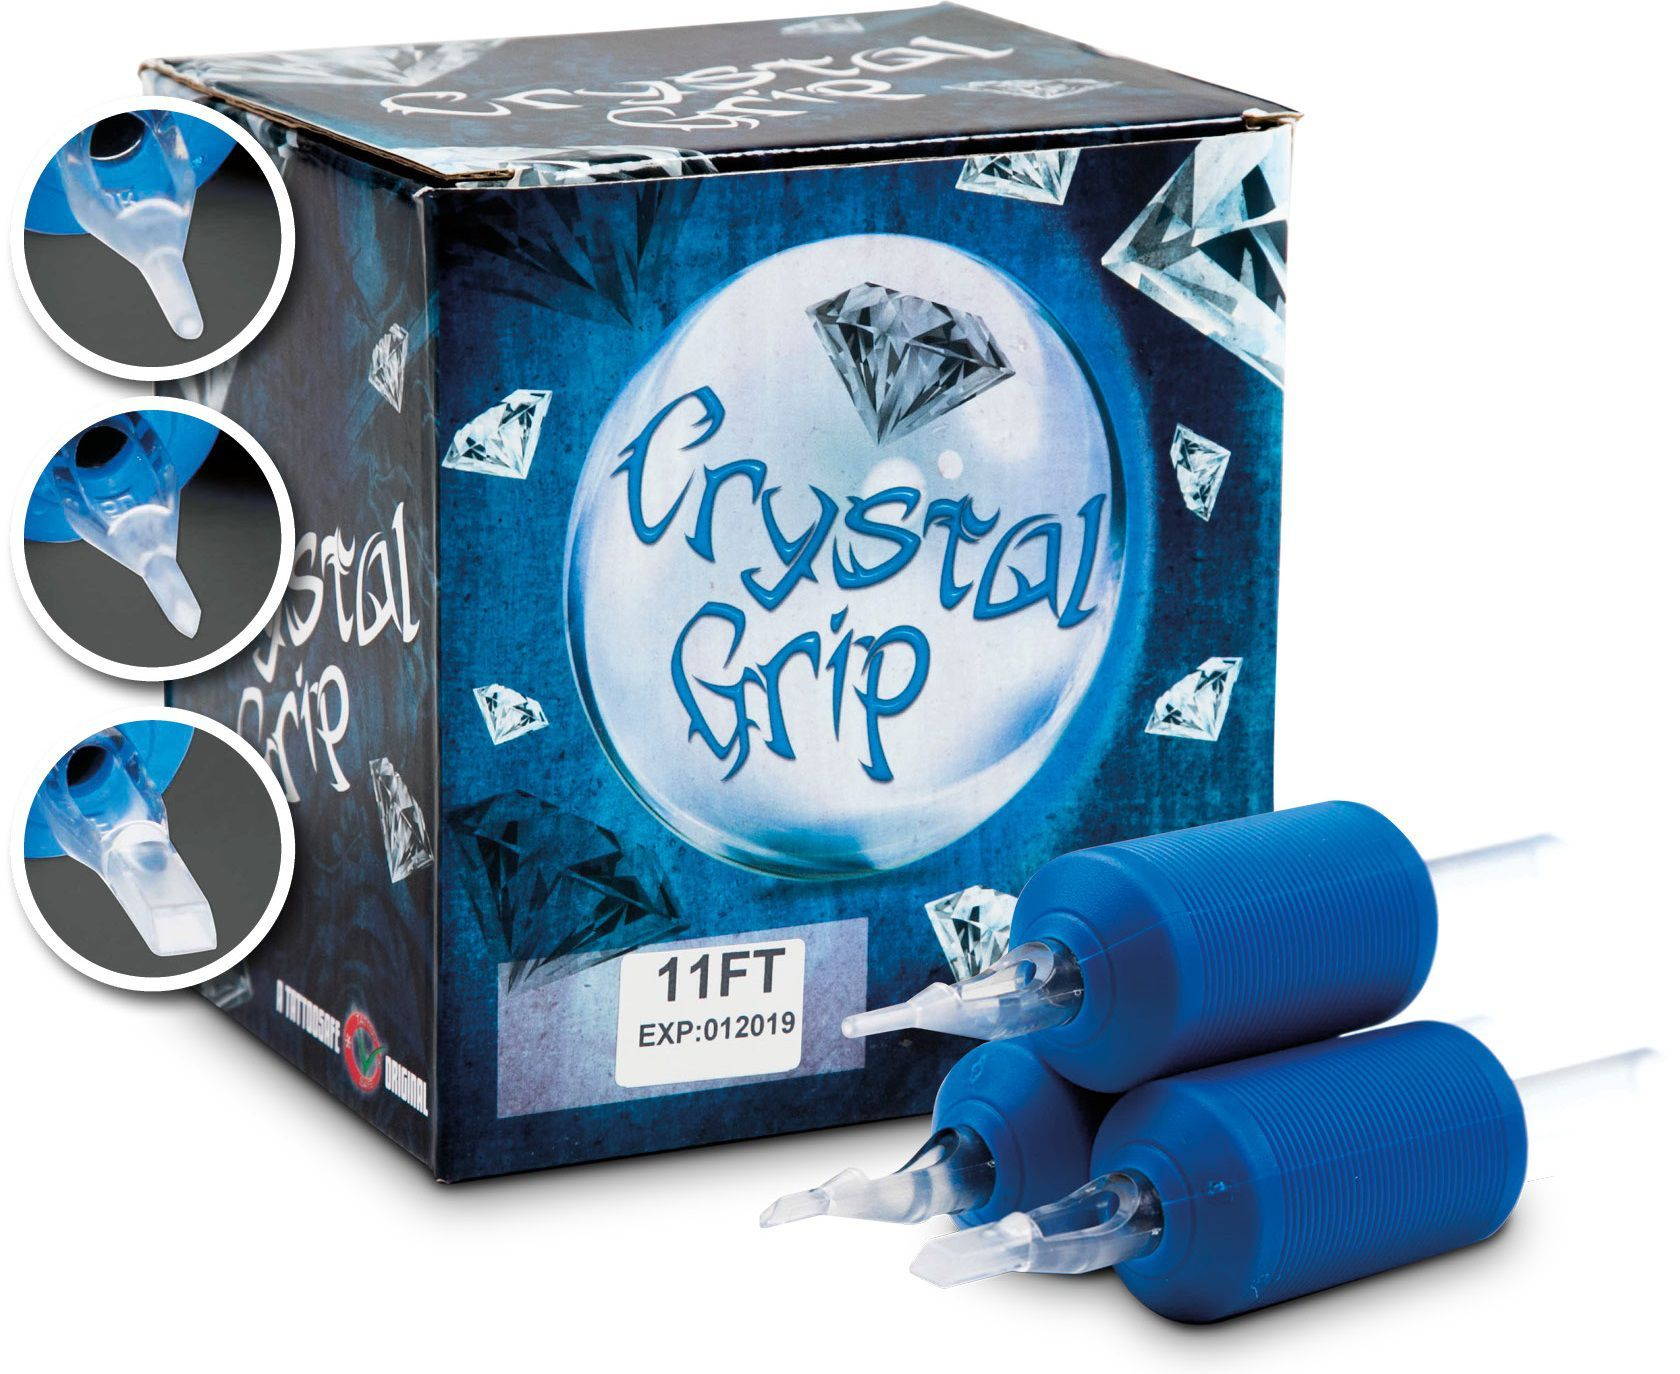 Crystal Disposable Grips